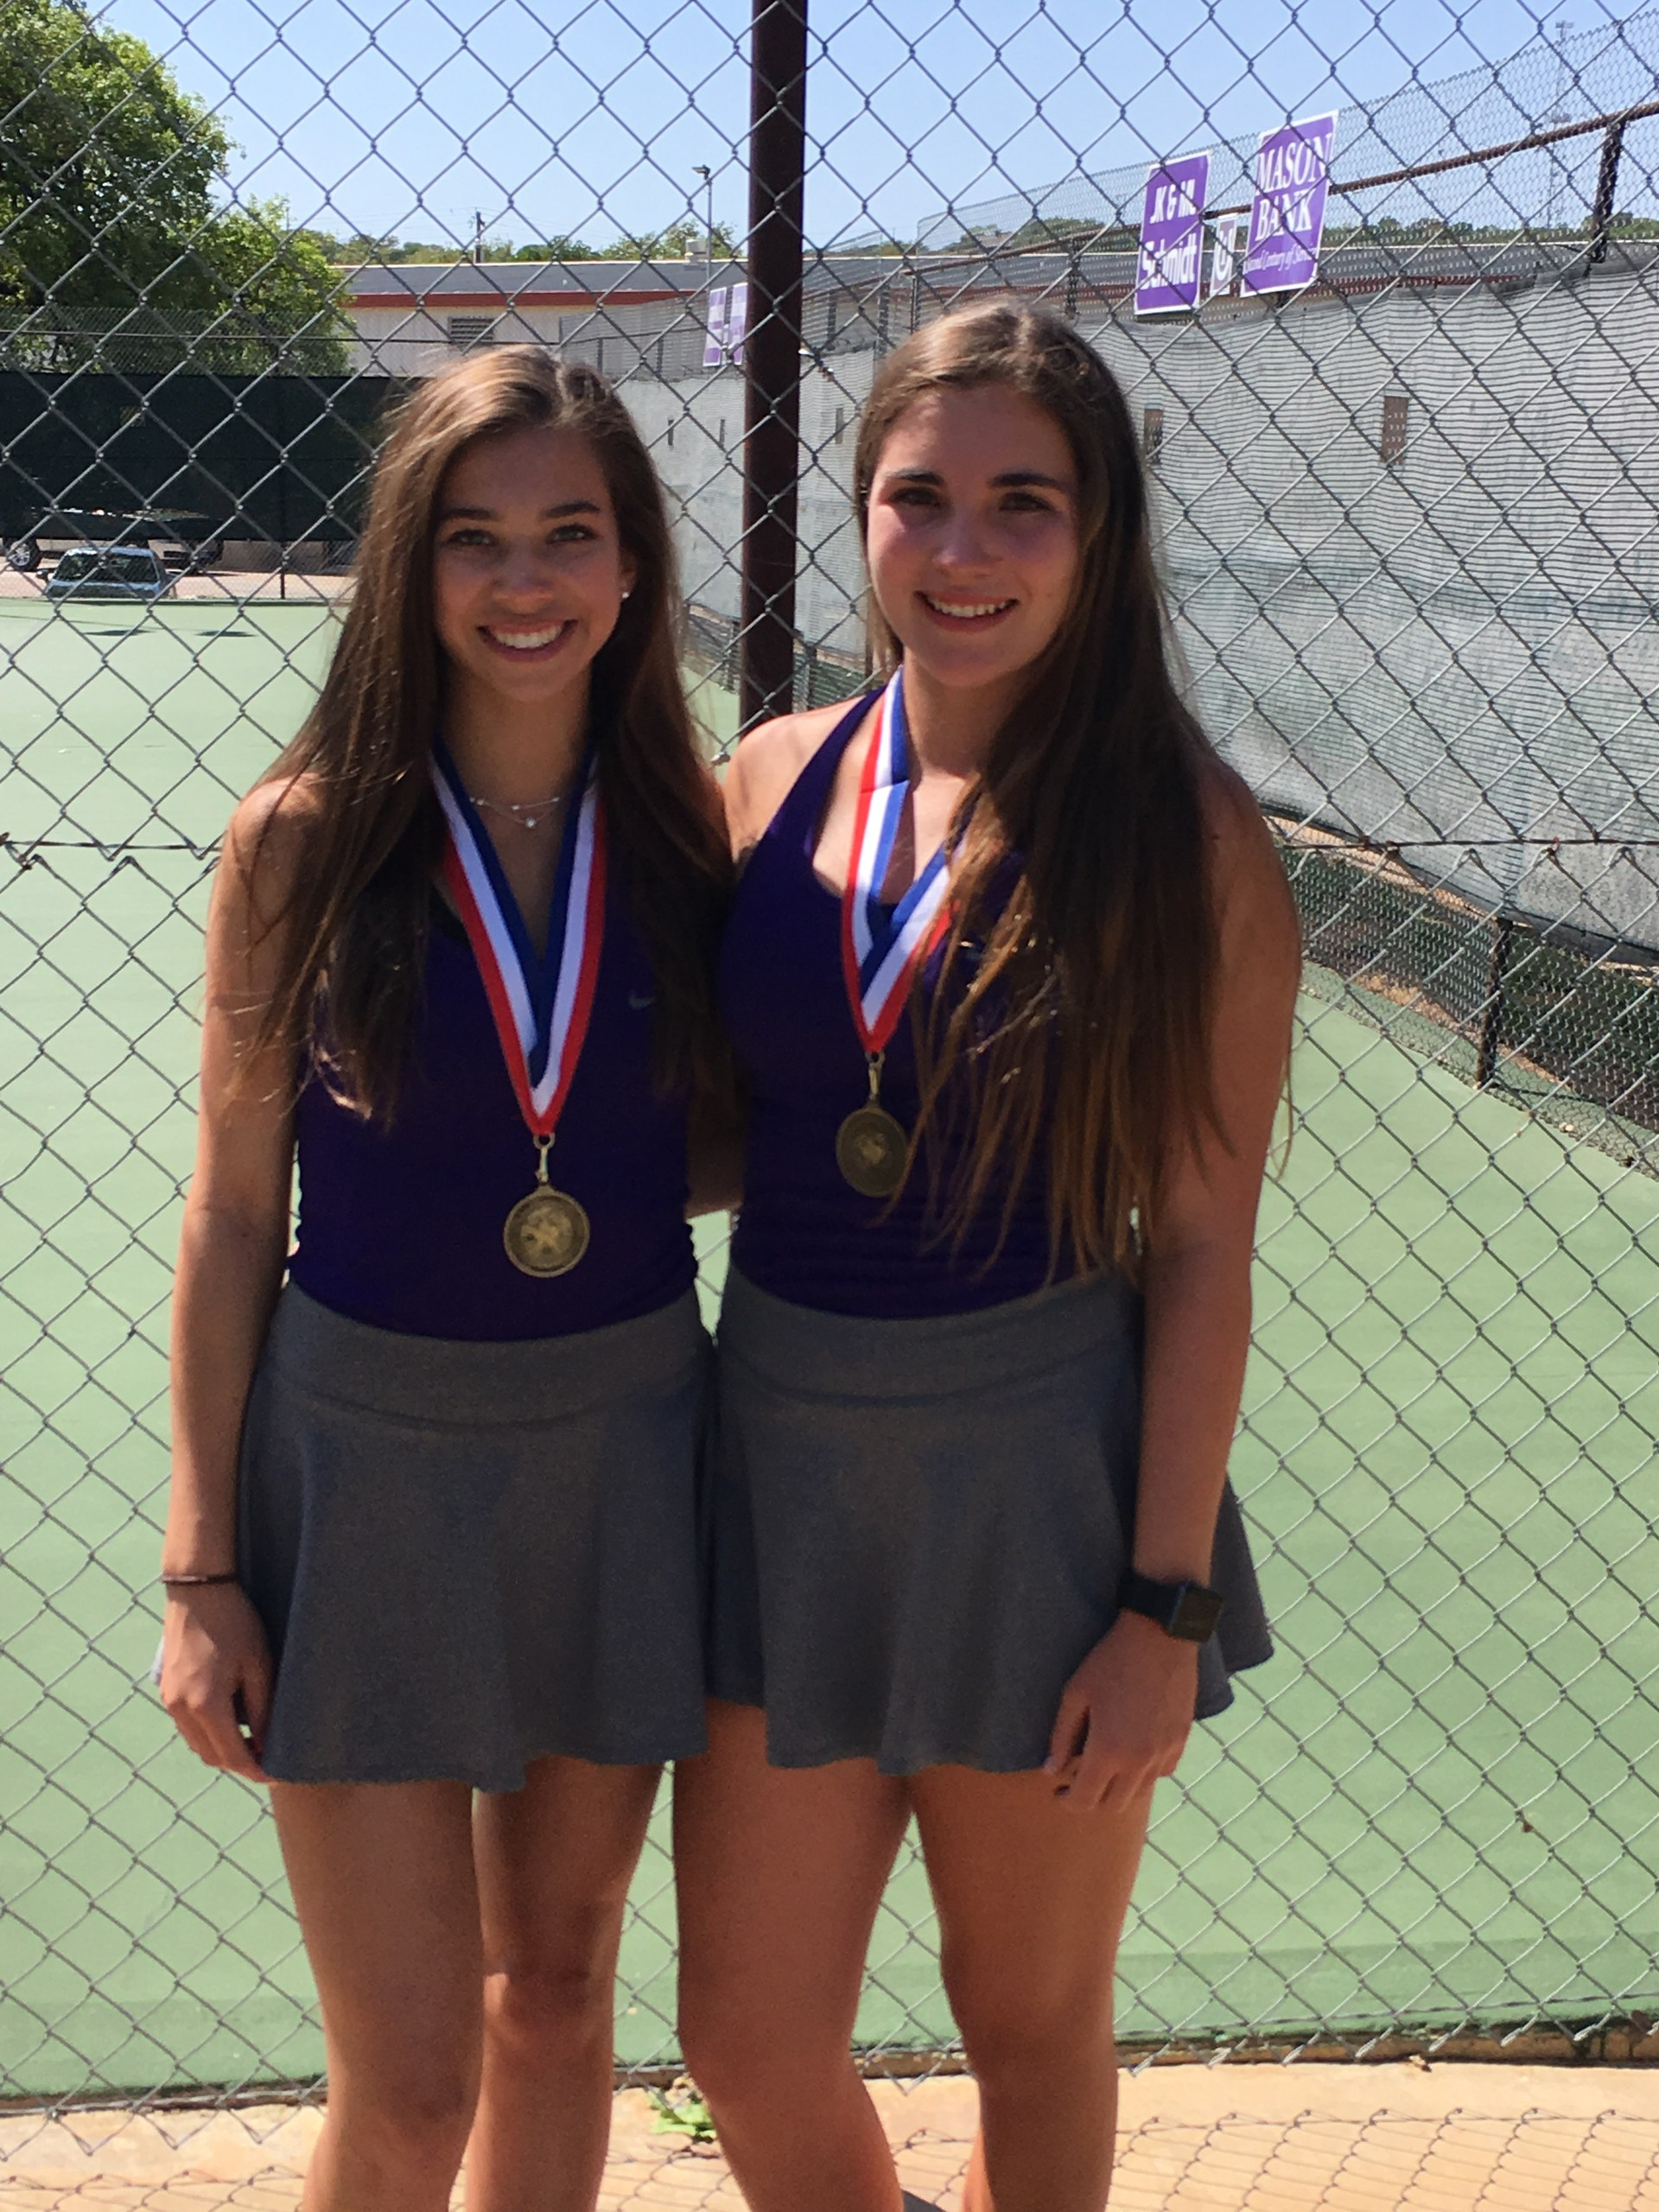 Raegan Glentz & Kate Gillespie - Varsity Girls Doubles Champs